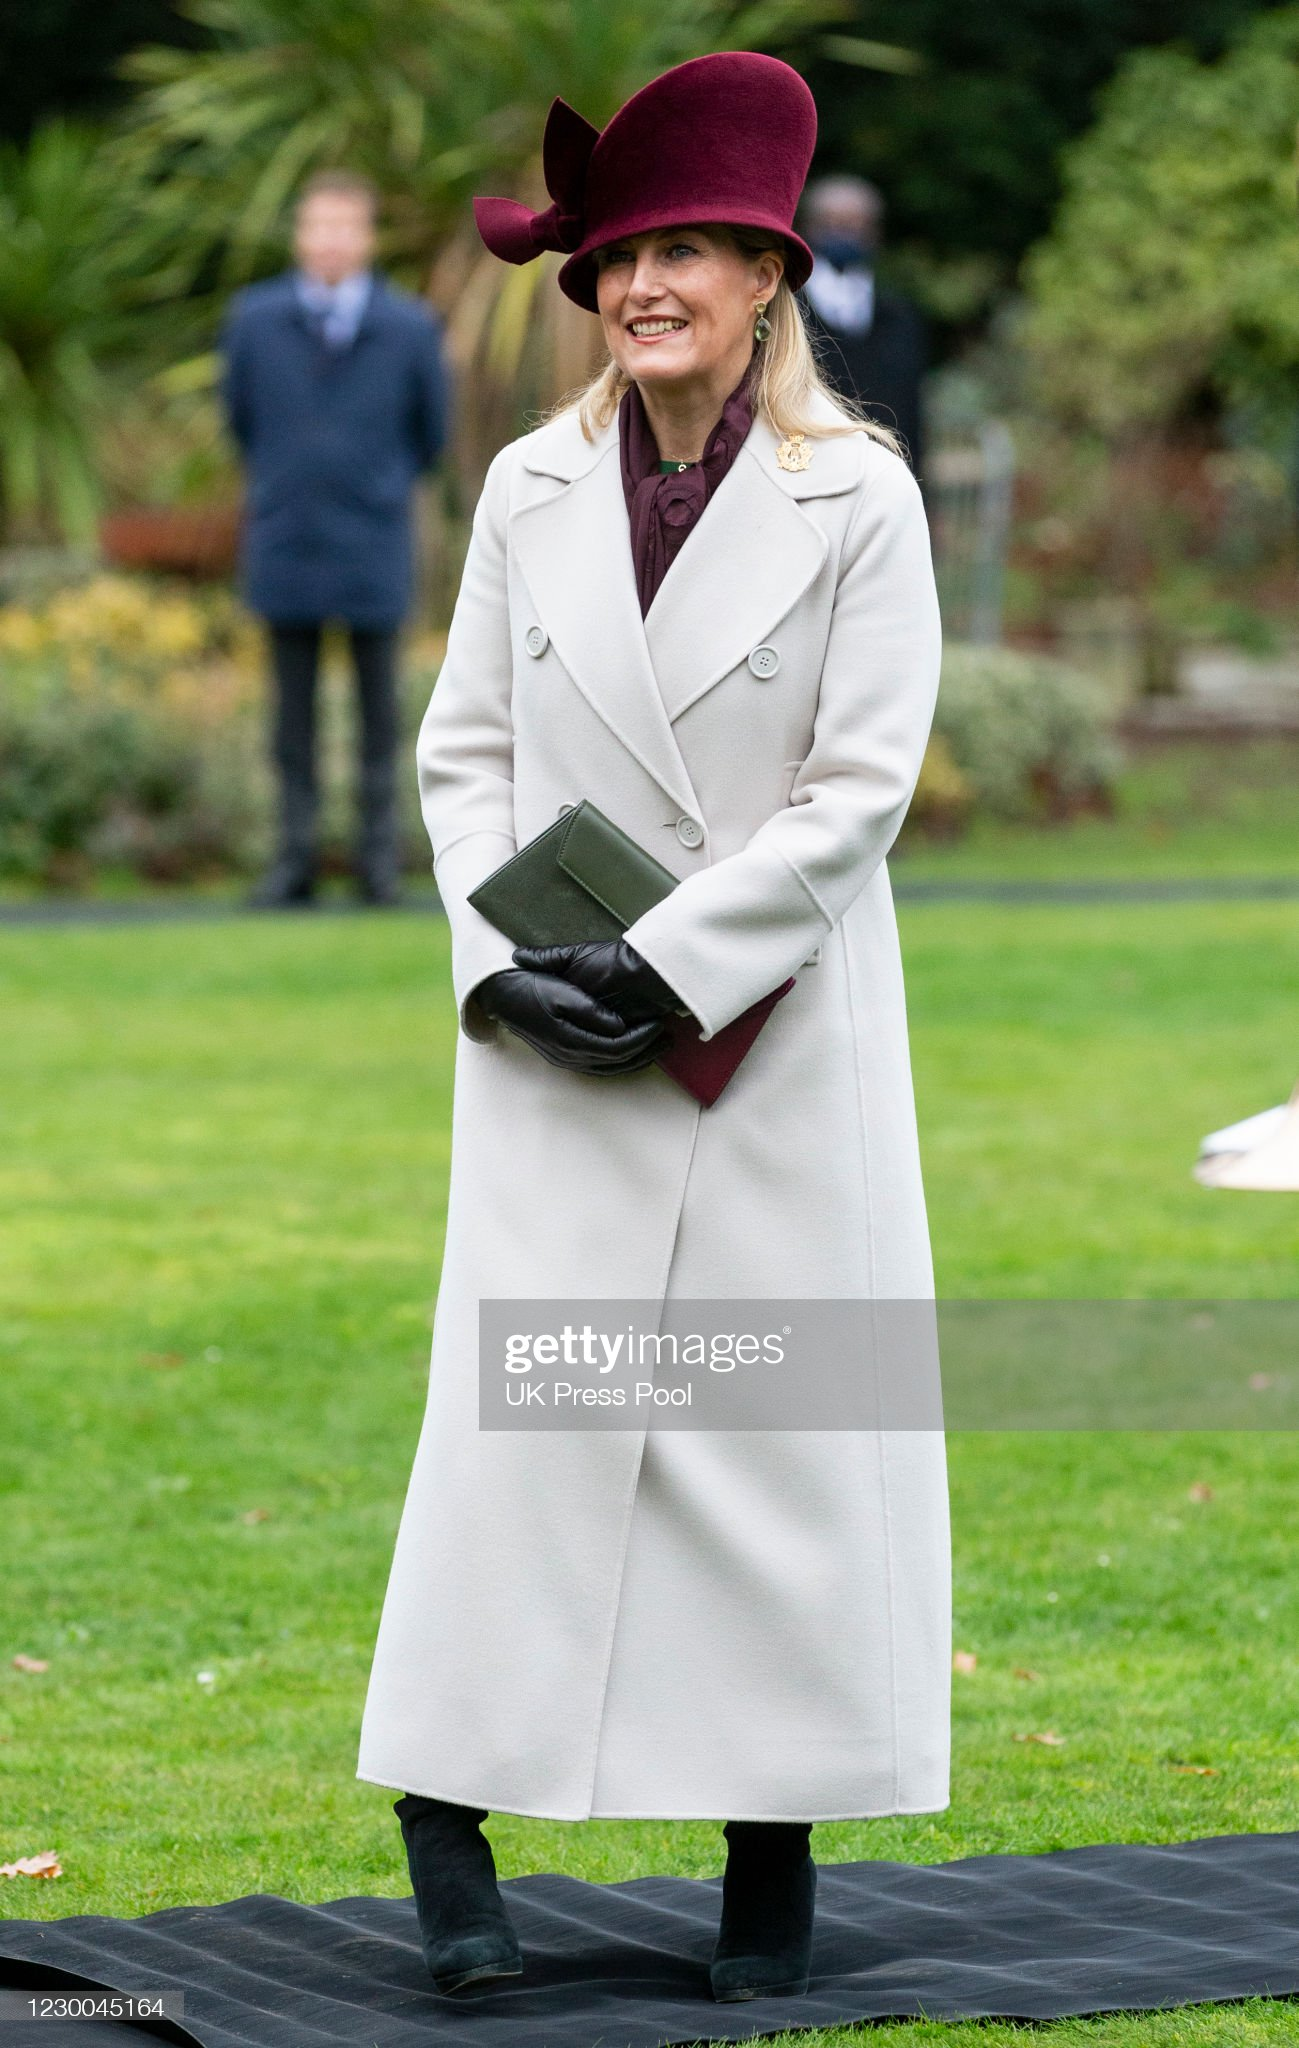 https://media.gettyimages.com/photos/sophie-countess-of-wessex-visits-the-corps-of-army-music-for-a-and-picture-id1230045164?s=2048x2048